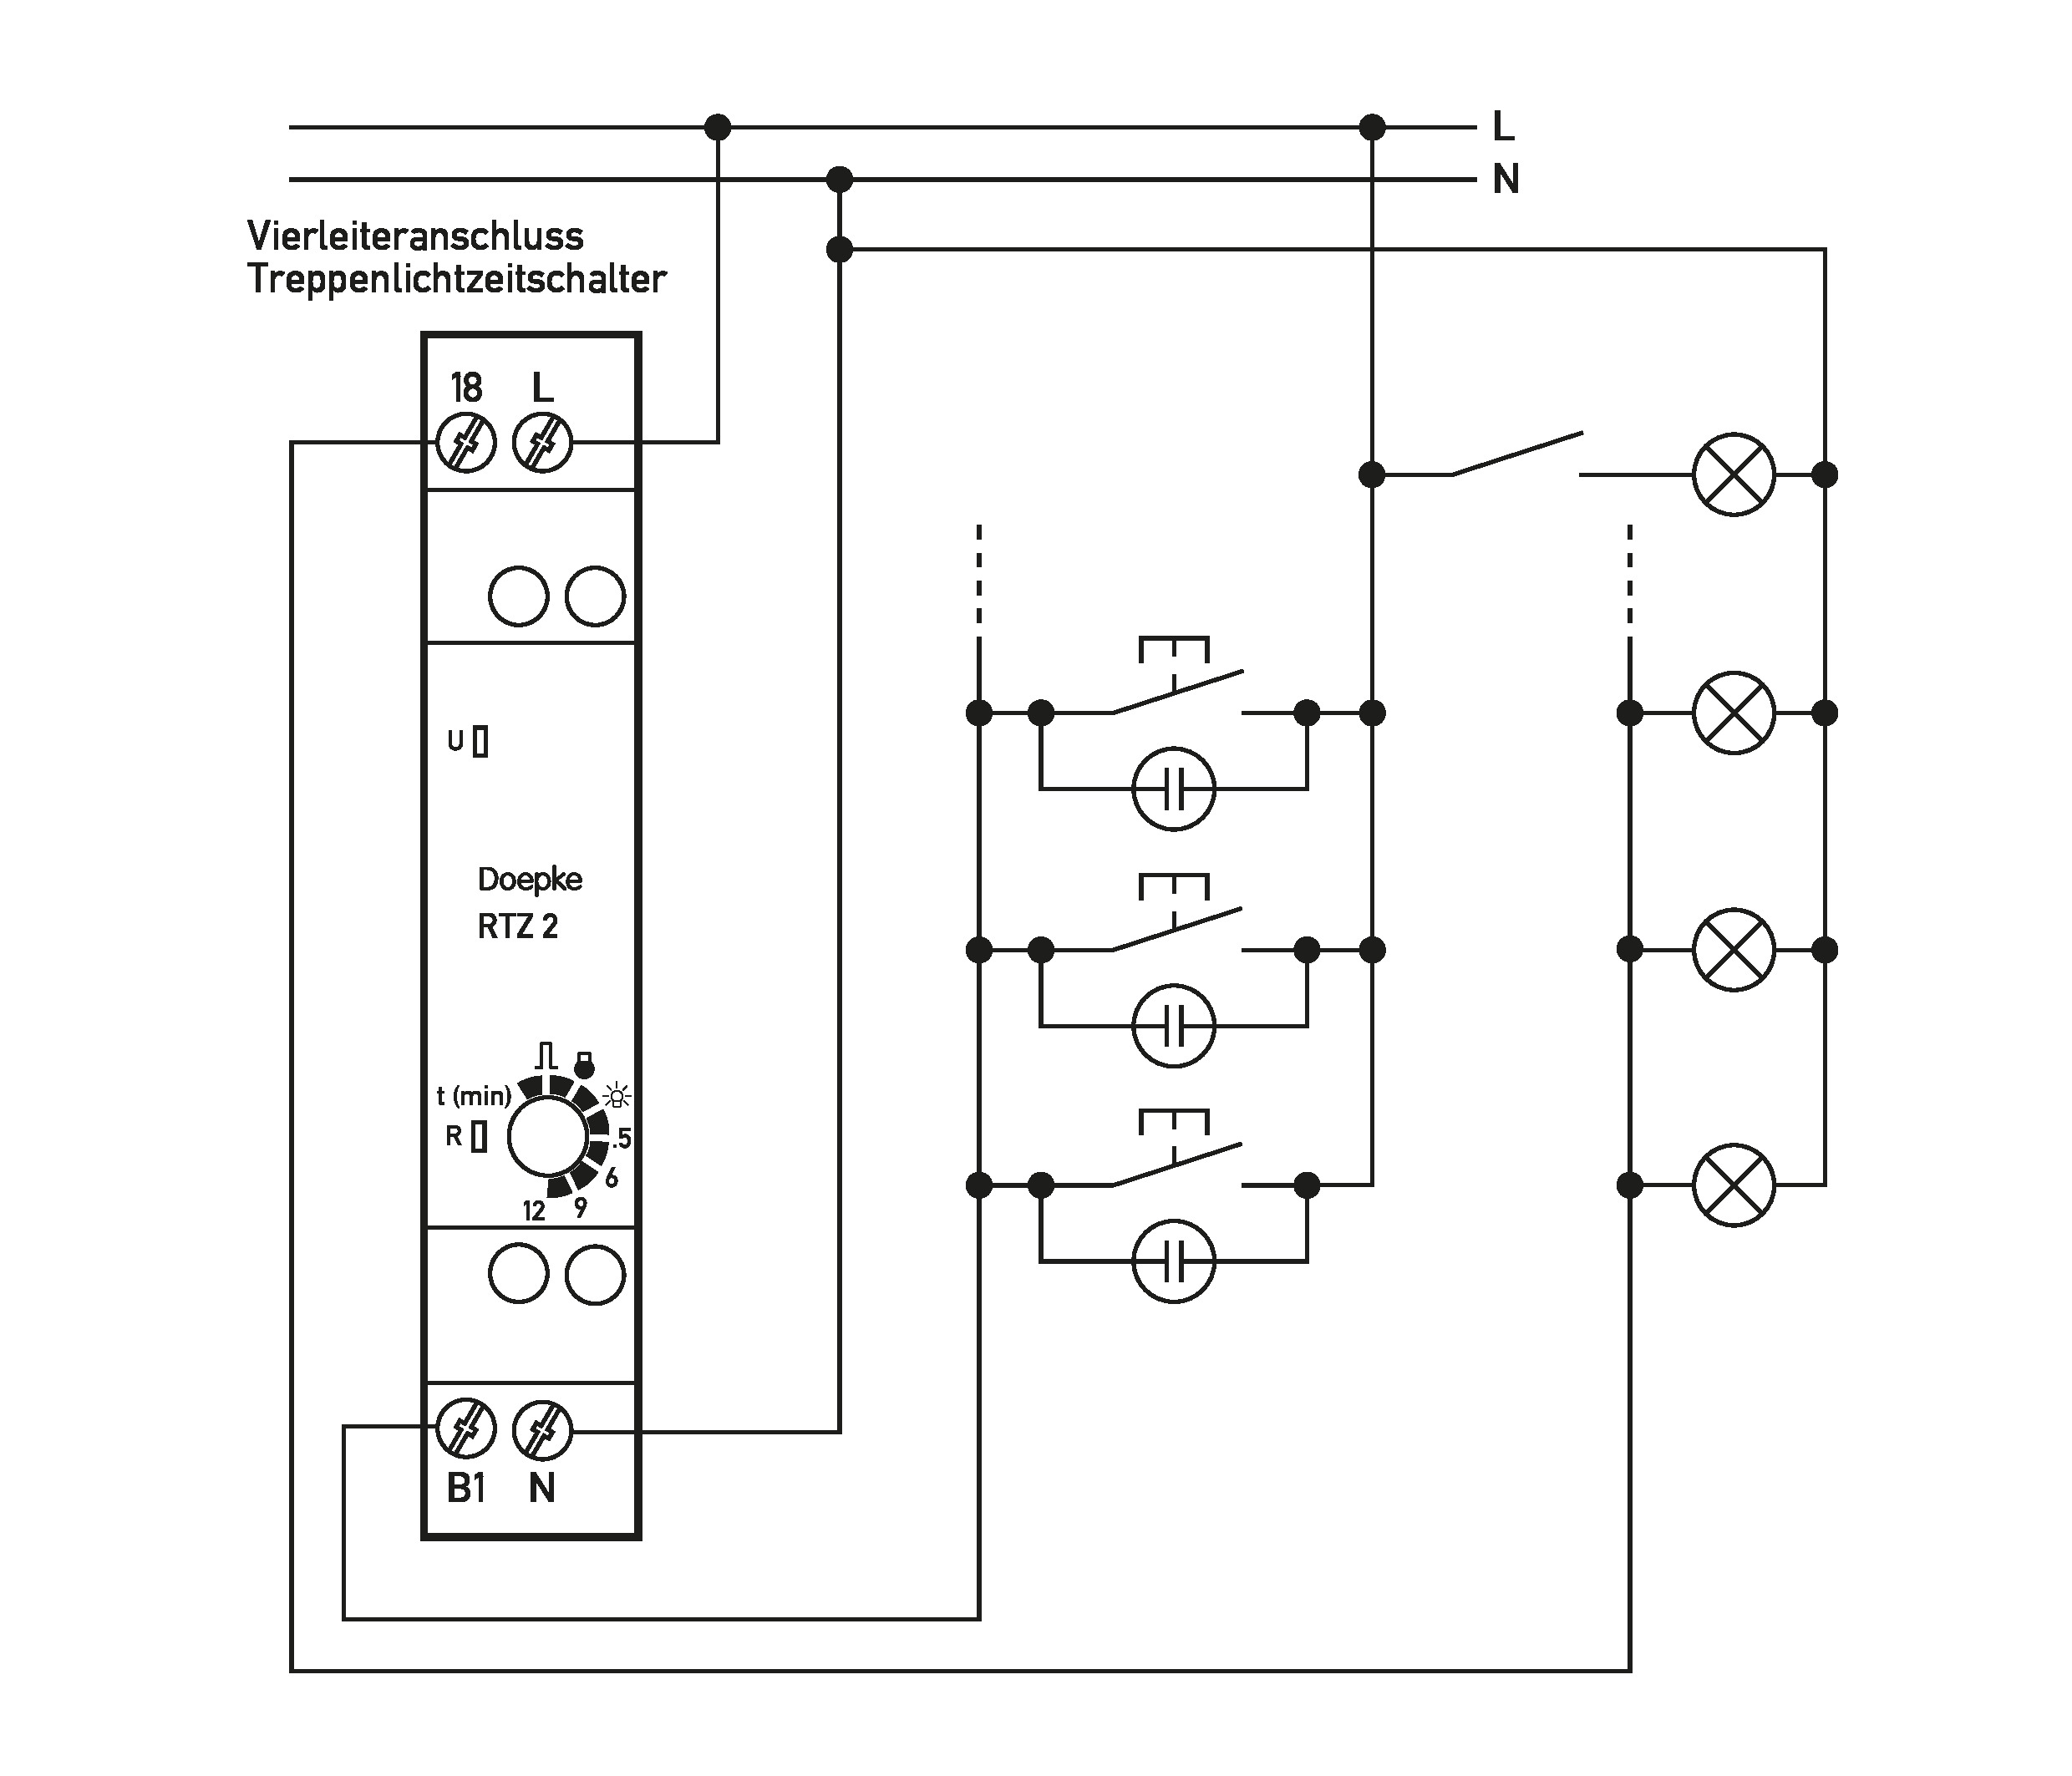 doepke_09980719_1_ans_ml doepke schaltger�te gmbh stairway time switches rtz 2 impulse relay wiring diagram at edmiracle.co